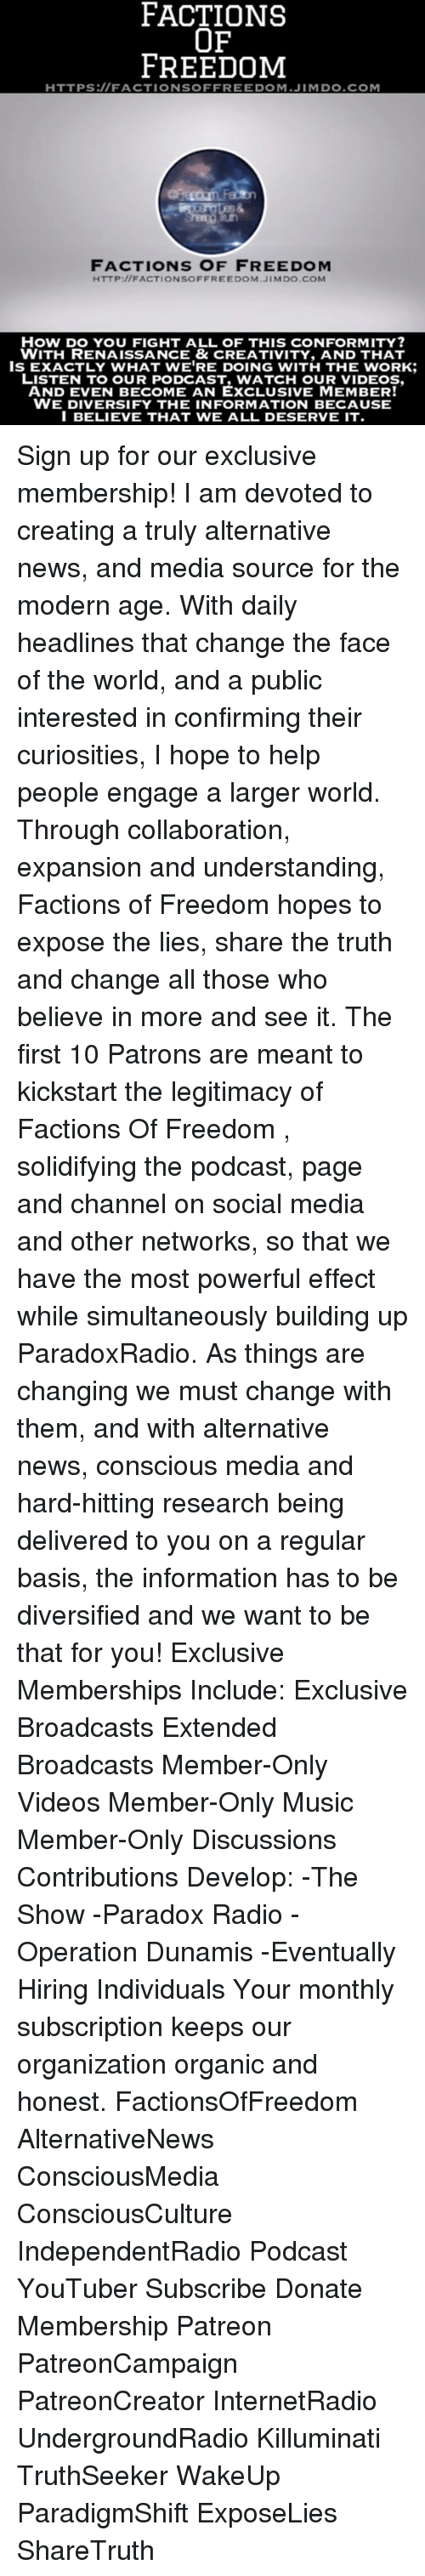 Subscripter: FACTIONS  OF  FREEDOM  HTTPS:// FACTIONS OFFREEDOM JIM DO COM  FACTIONS OF FREEDOM  HTTP://FACTIONSOFFREEDOM JIMDO.COM  HOW DO YOU FIGHT ALL OF THIS CONFORMITY?  WITH RENAISSANCE & CREATIVITY, AND THAT  ISEXACTLY WHAT WE'RE DOING WITH THE WORK:  LISTEN TO OUR PODCAST, WATCH OUR AND EVEN BECOME AN EXCLUSIVE MEMBERT  WE DIVERSIFY THE INFORMATION BECAUSE  I BELIEVE THAT WE ALL DESERVE IT. Sign up for our exclusive membership! I am devoted to creating a truly alternative news, and media source for the modern age. With daily headlines that change the face of the world, and a public interested in confirming their curiosities, I hope to help people engage a larger world. Through collaboration, expansion and understanding, Factions of Freedom hopes to expose the lies, share the truth and change all those who believe in more and see it. The first 10 Patrons are meant to kickstart the legitimacy of Factions Of Freedom , solidifying the podcast, page and channel on social media and other networks, so that we have the most powerful effect while simultaneously building up ParadoxRadio. As things are changing we must change with them, and with alternative news, conscious media and hard-hitting research being delivered to you on a regular basis, the information has to be diversified and we want to be that for you! Exclusive Memberships Include: Exclusive Broadcasts Extended Broadcasts Member-Only Videos Member-Only Music Member-Only Discussions Contributions Develop: -The Show -Paradox Radio -Operation Dunamis -Eventually Hiring Individuals Your monthly subscription keeps our organization organic and honest. FactionsOfFreedom AlternativeNews ConsciousMedia ConsciousCulture IndependentRadio Podcast YouTuber Subscribe Donate Membership Patreon PatreonCampaign PatreonCreator InternetRadio UndergroundRadio Killuminati TruthSeeker WakeUp ParadigmShift ExposeLies ShareTruth